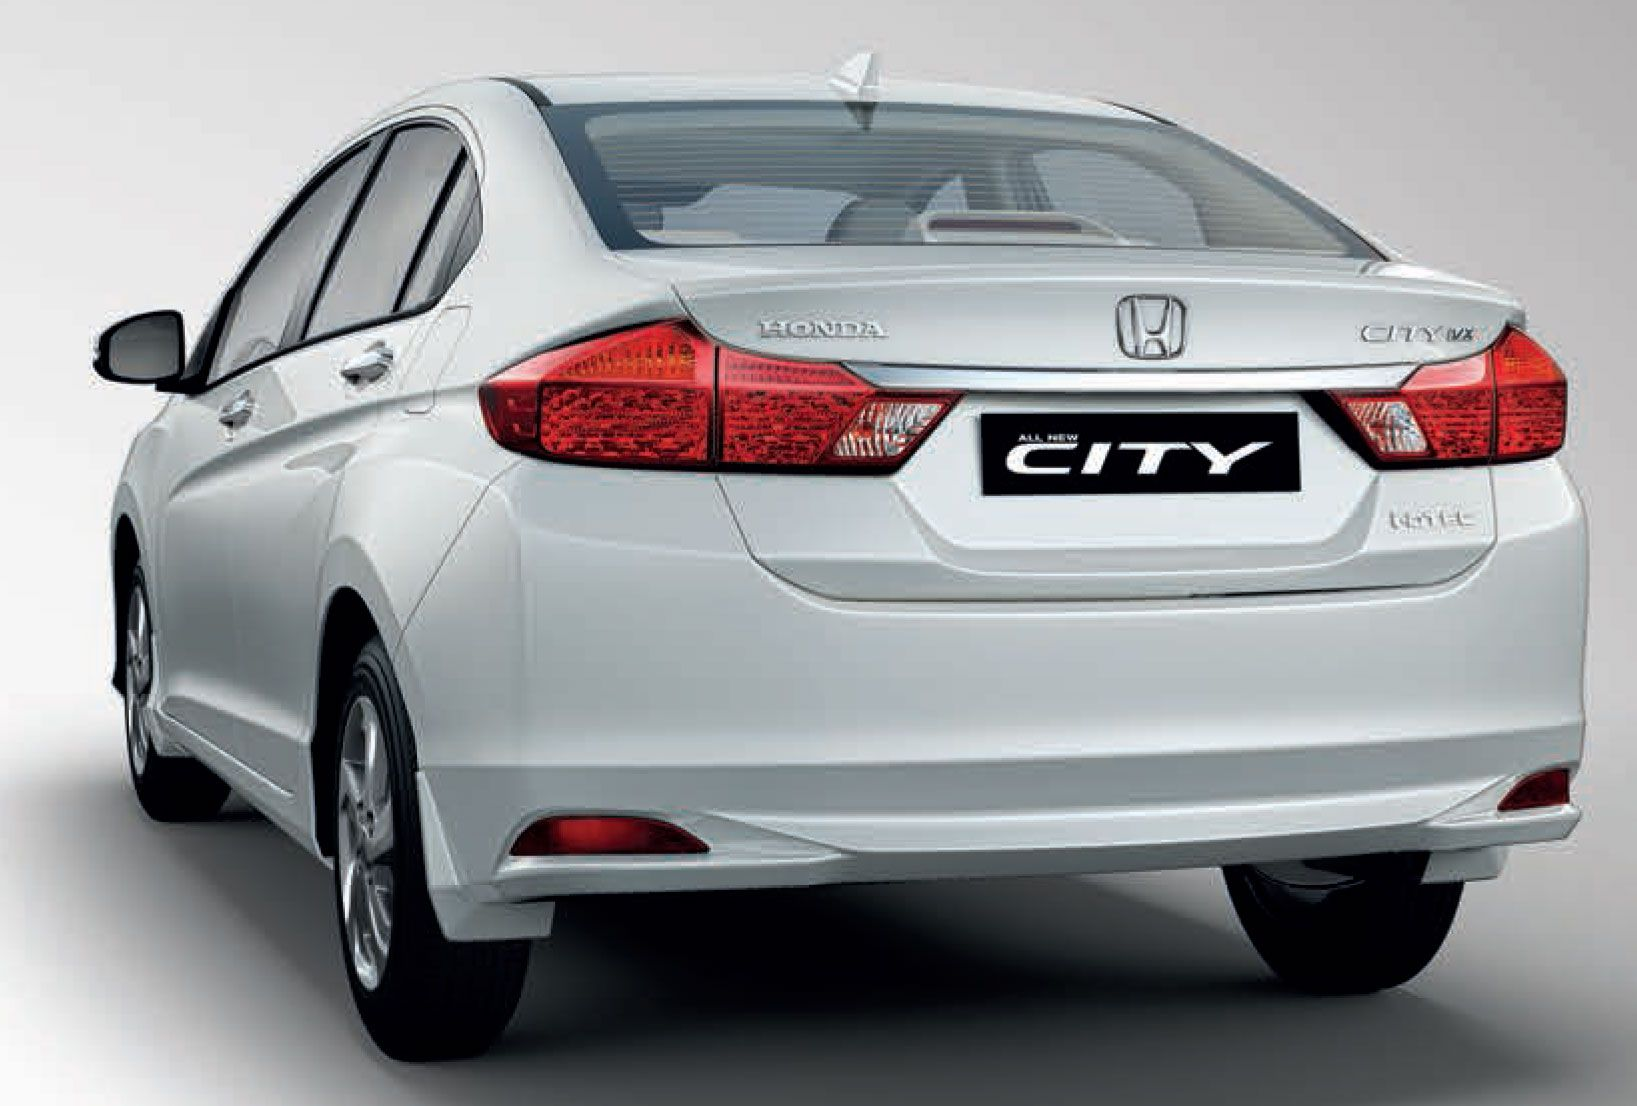 2014 honda city side view honda city hd images pinterest honda city and honda